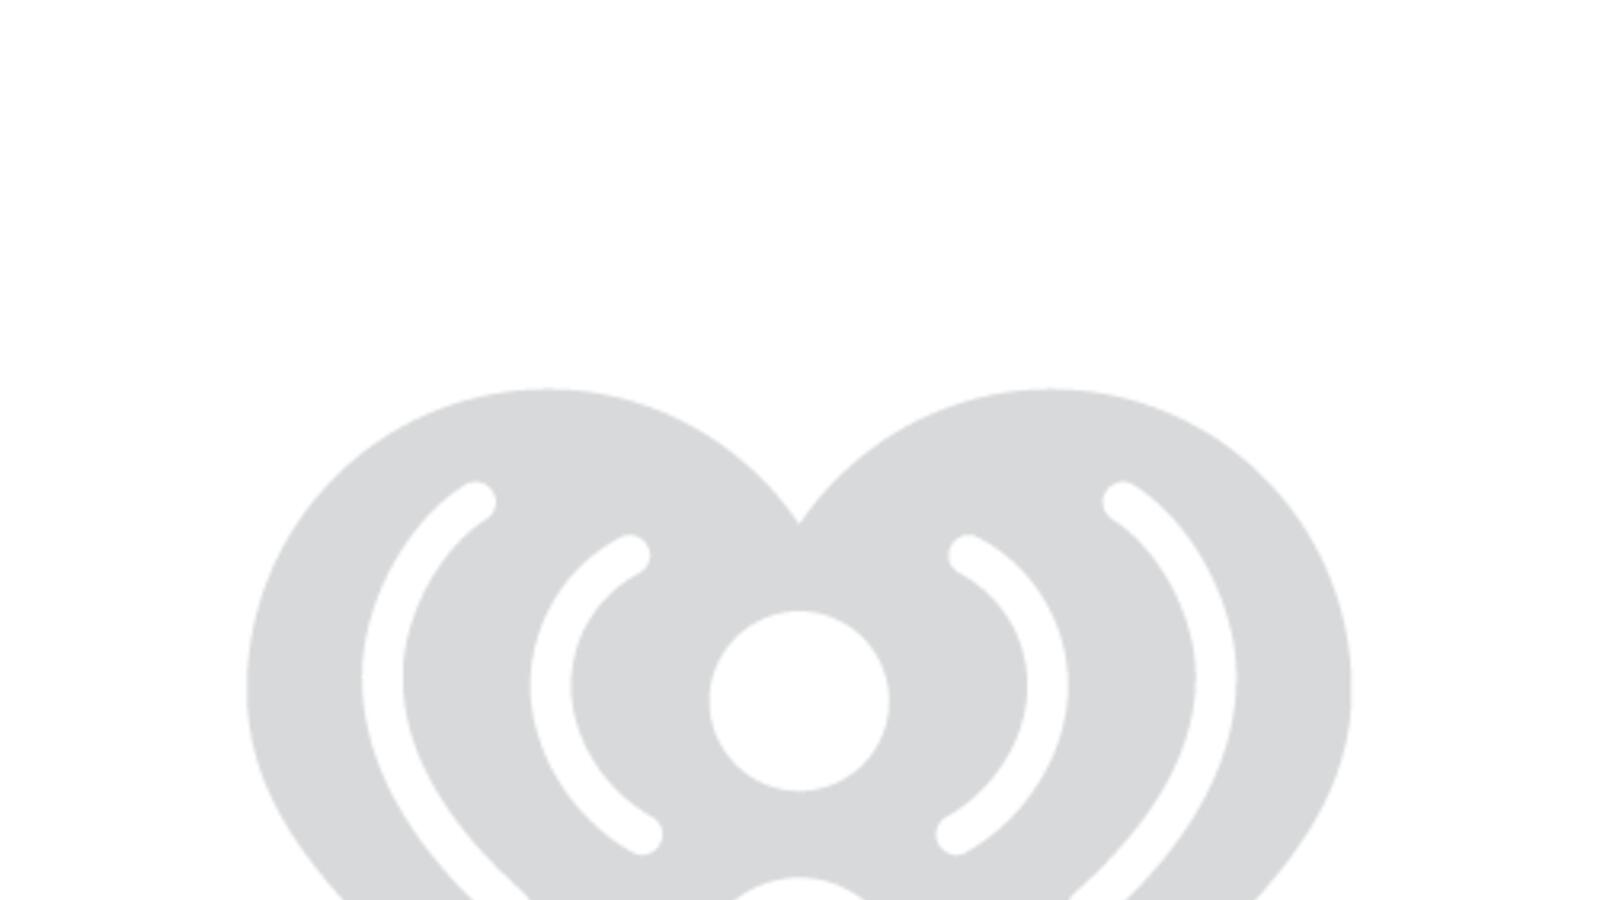 Disneyland To Require COVID Vaccine For Salaried & Non-Union Hourly Workers